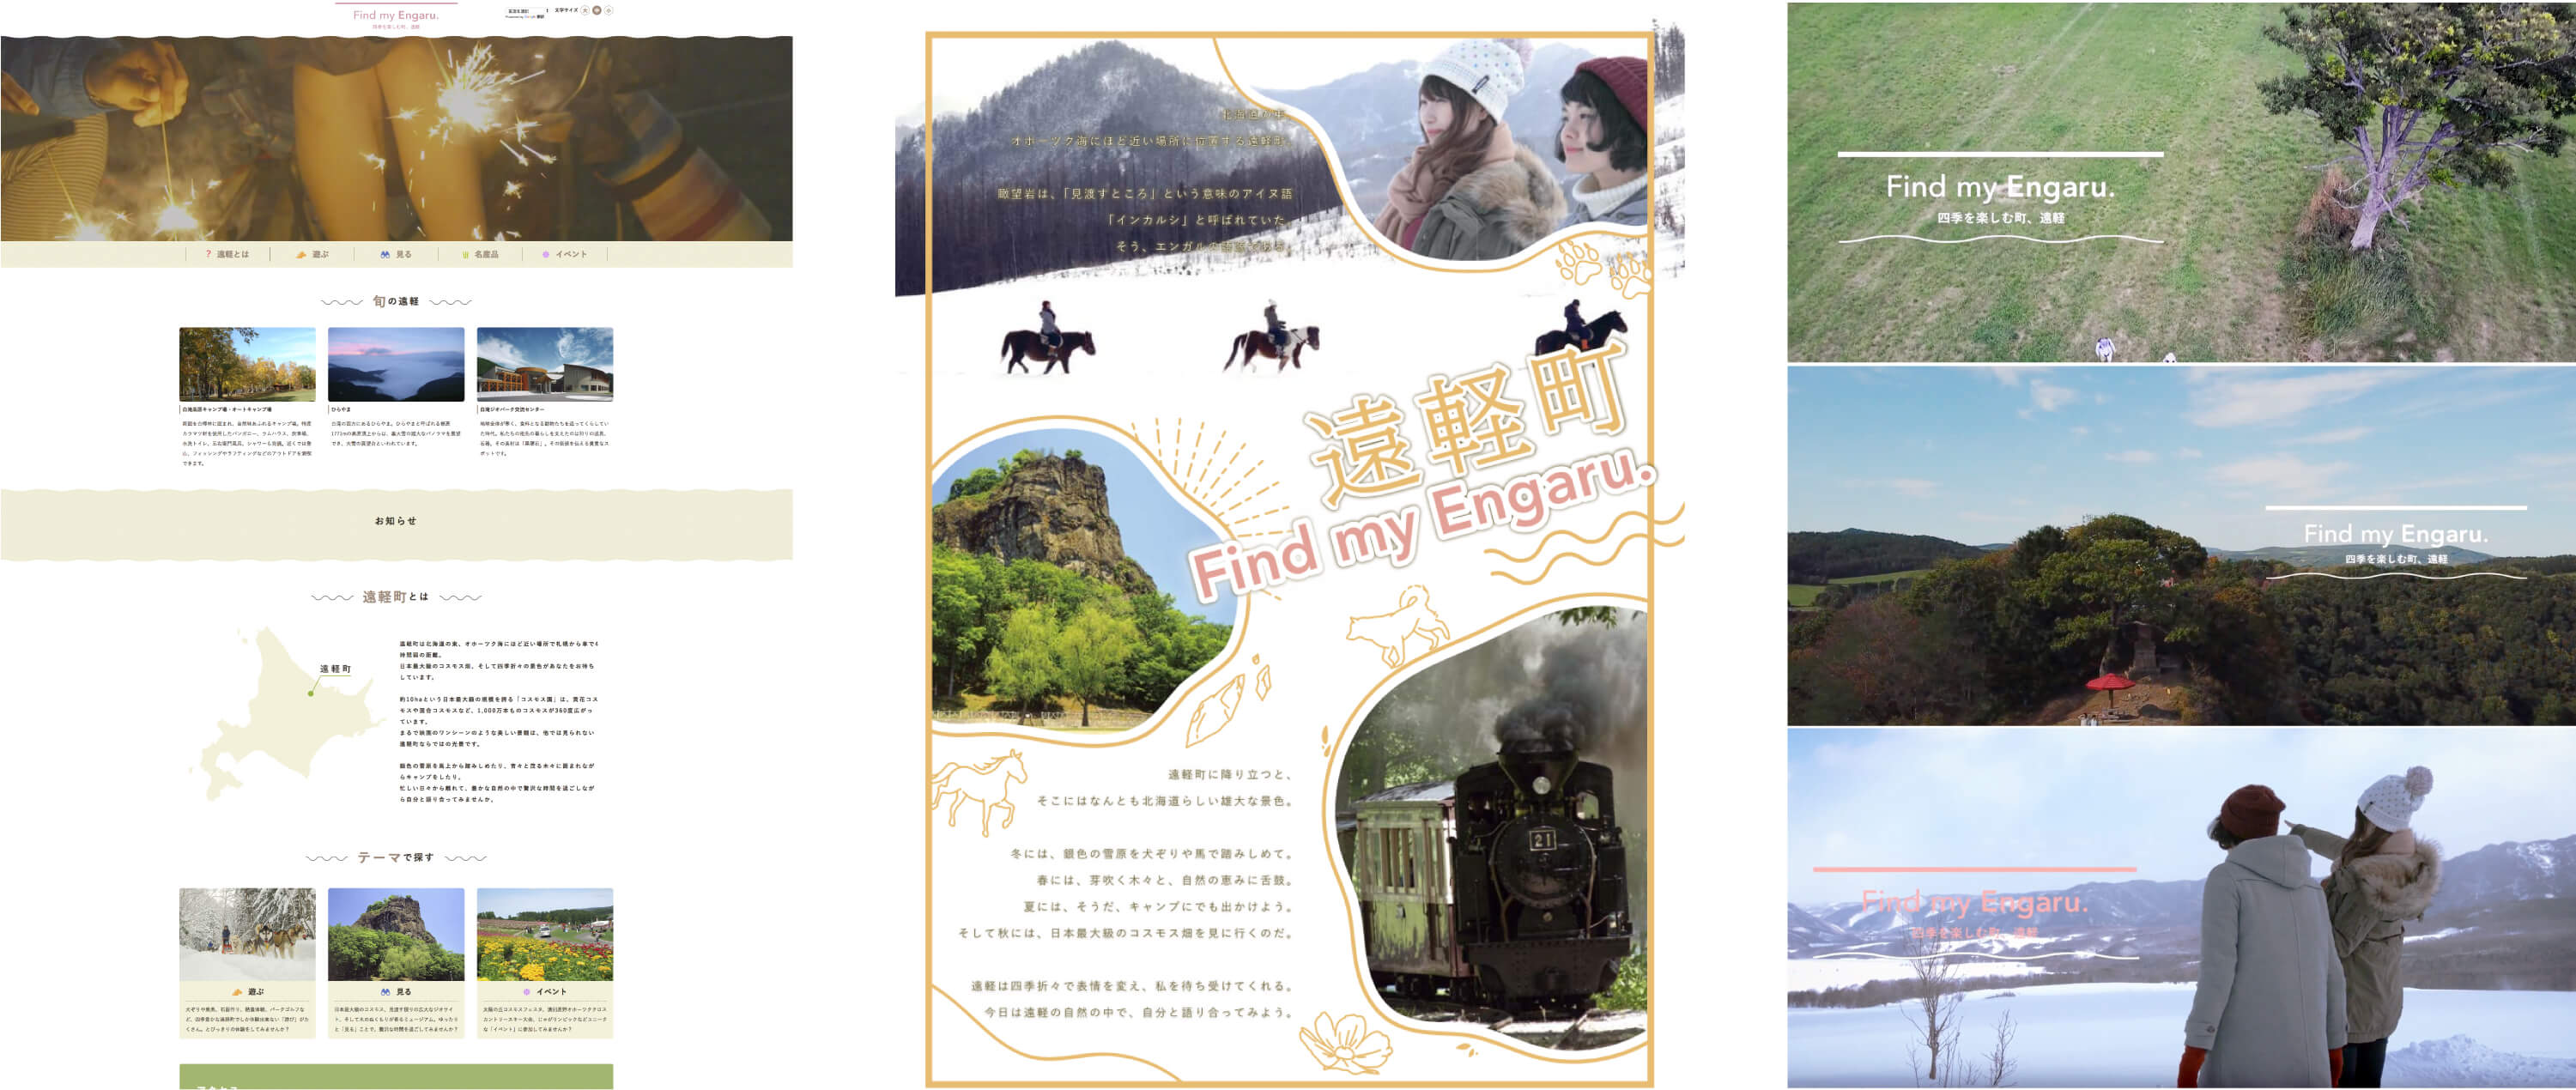 FIND MY ENGARU制作物